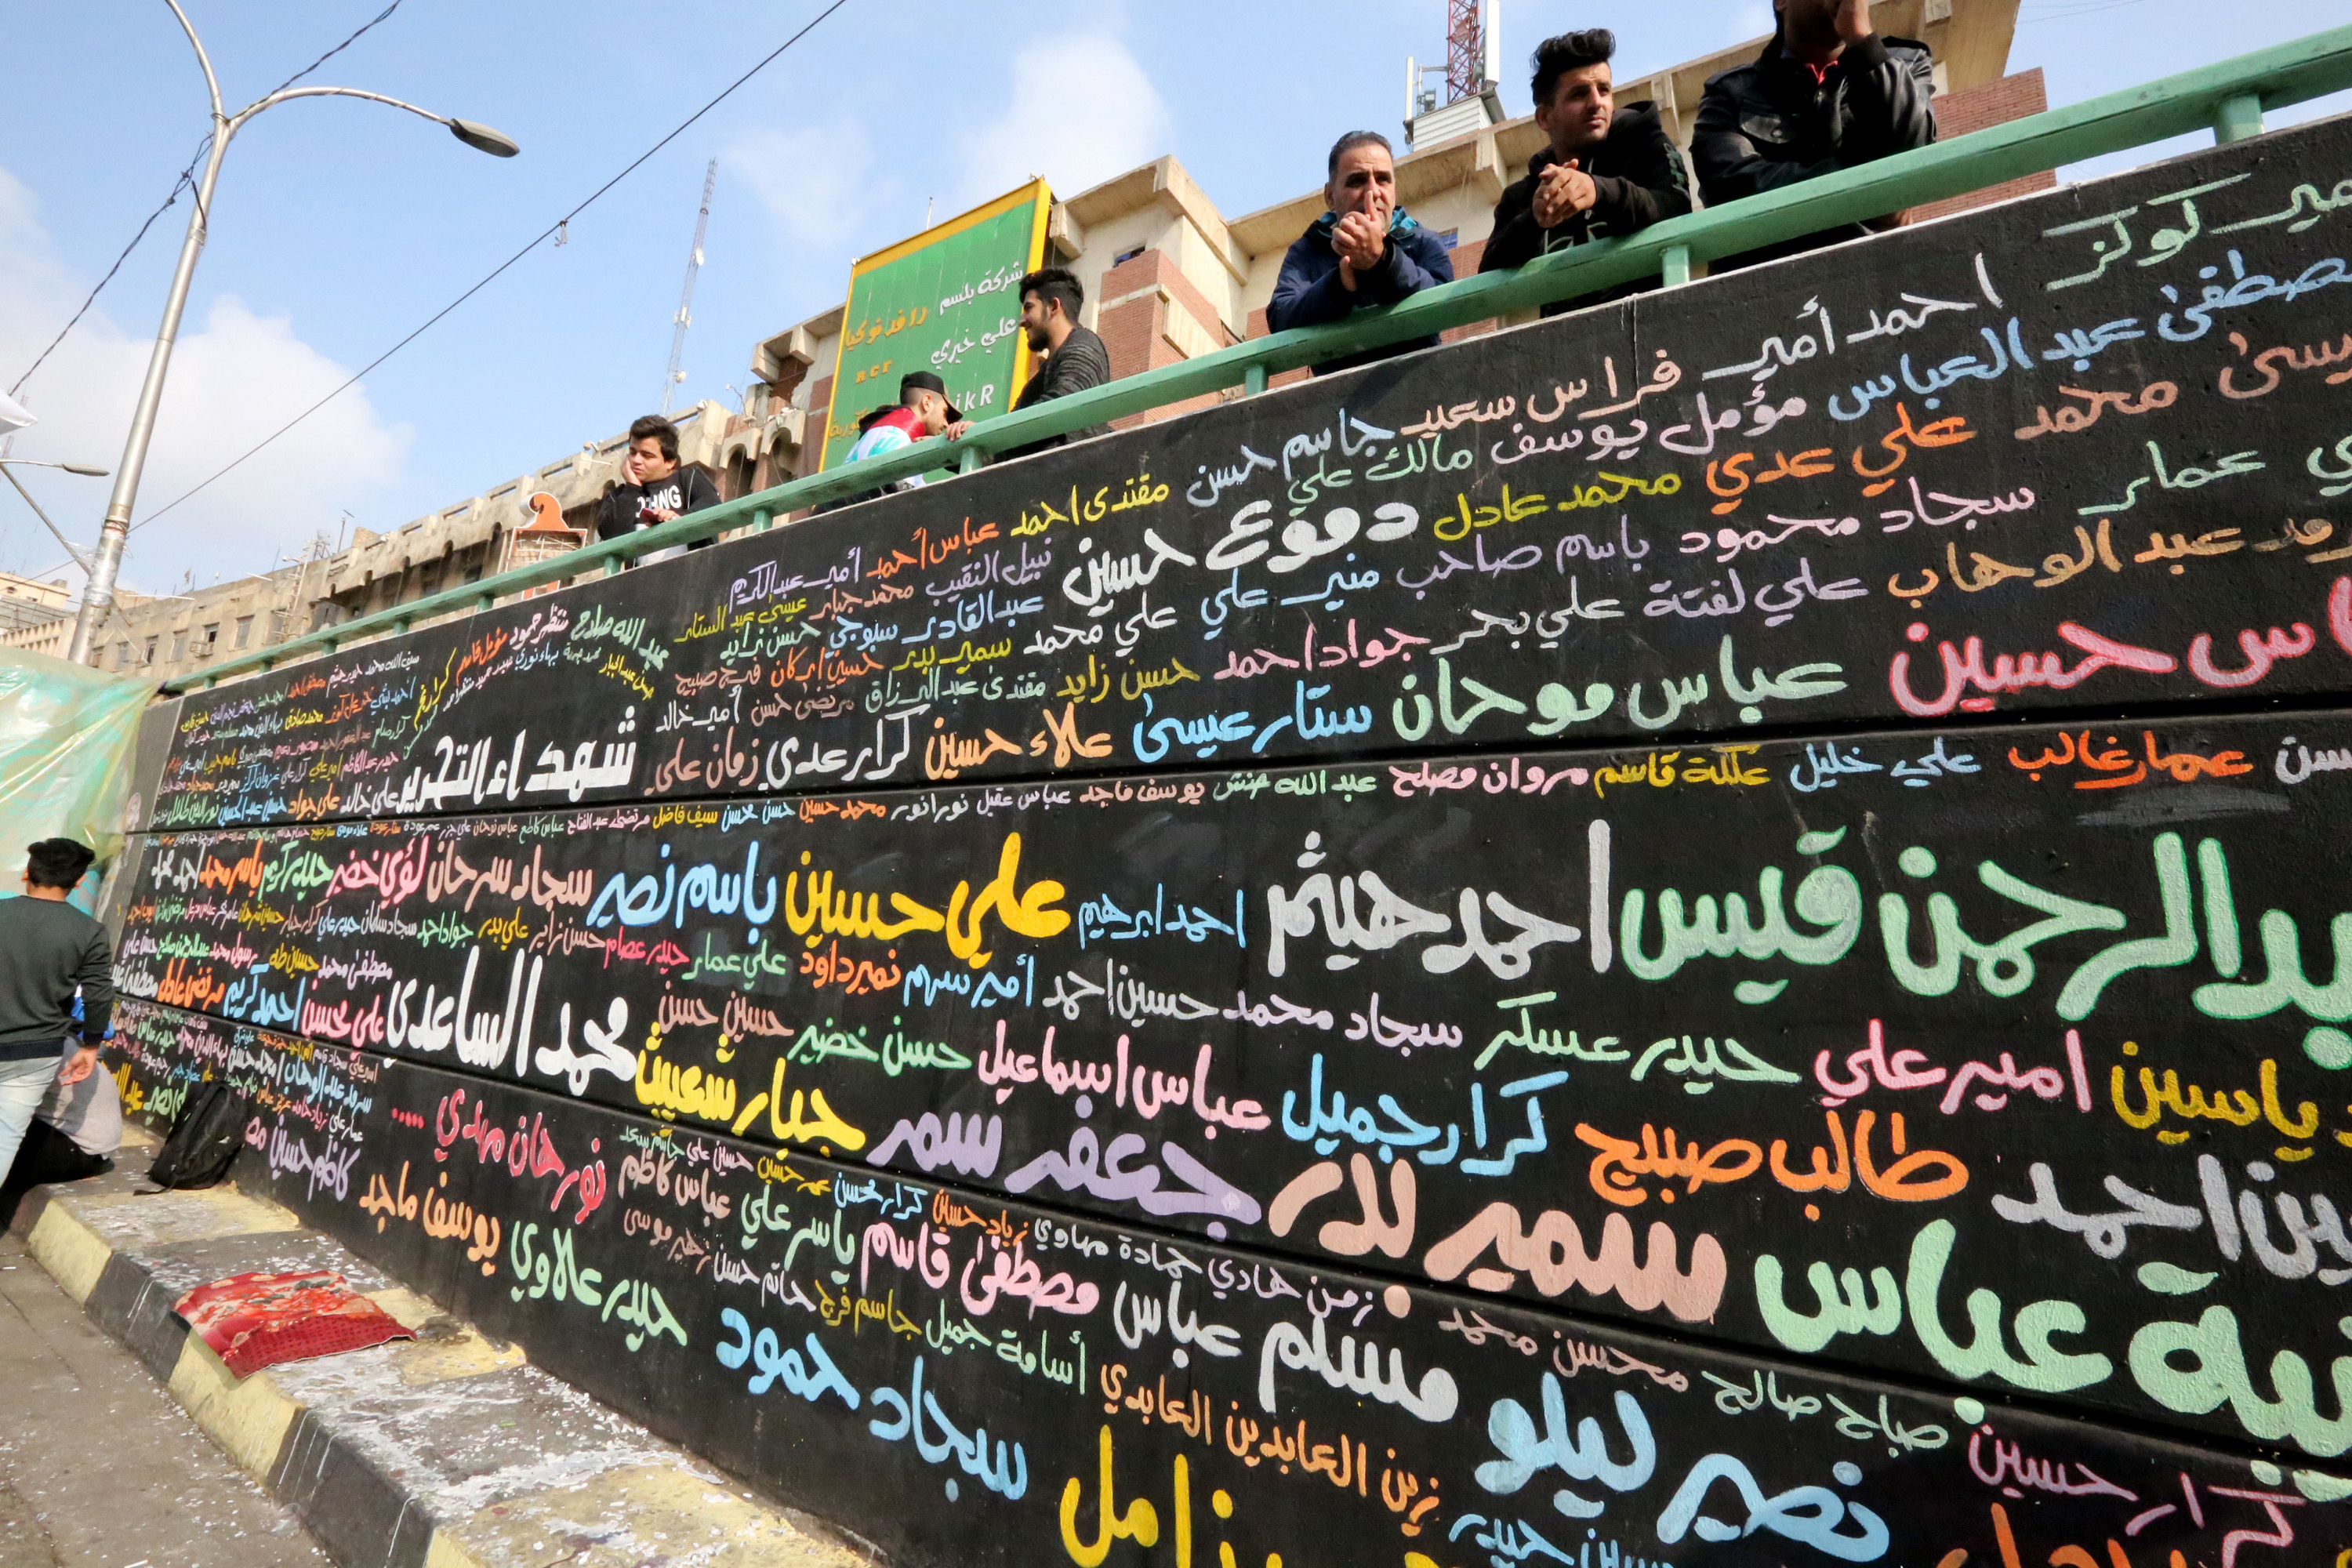 A memorial mural bearing names of demonstrators killed during ongoing anti-government protests is seen in Tahrir square in the capital Baghdad on 8 December (AFP)